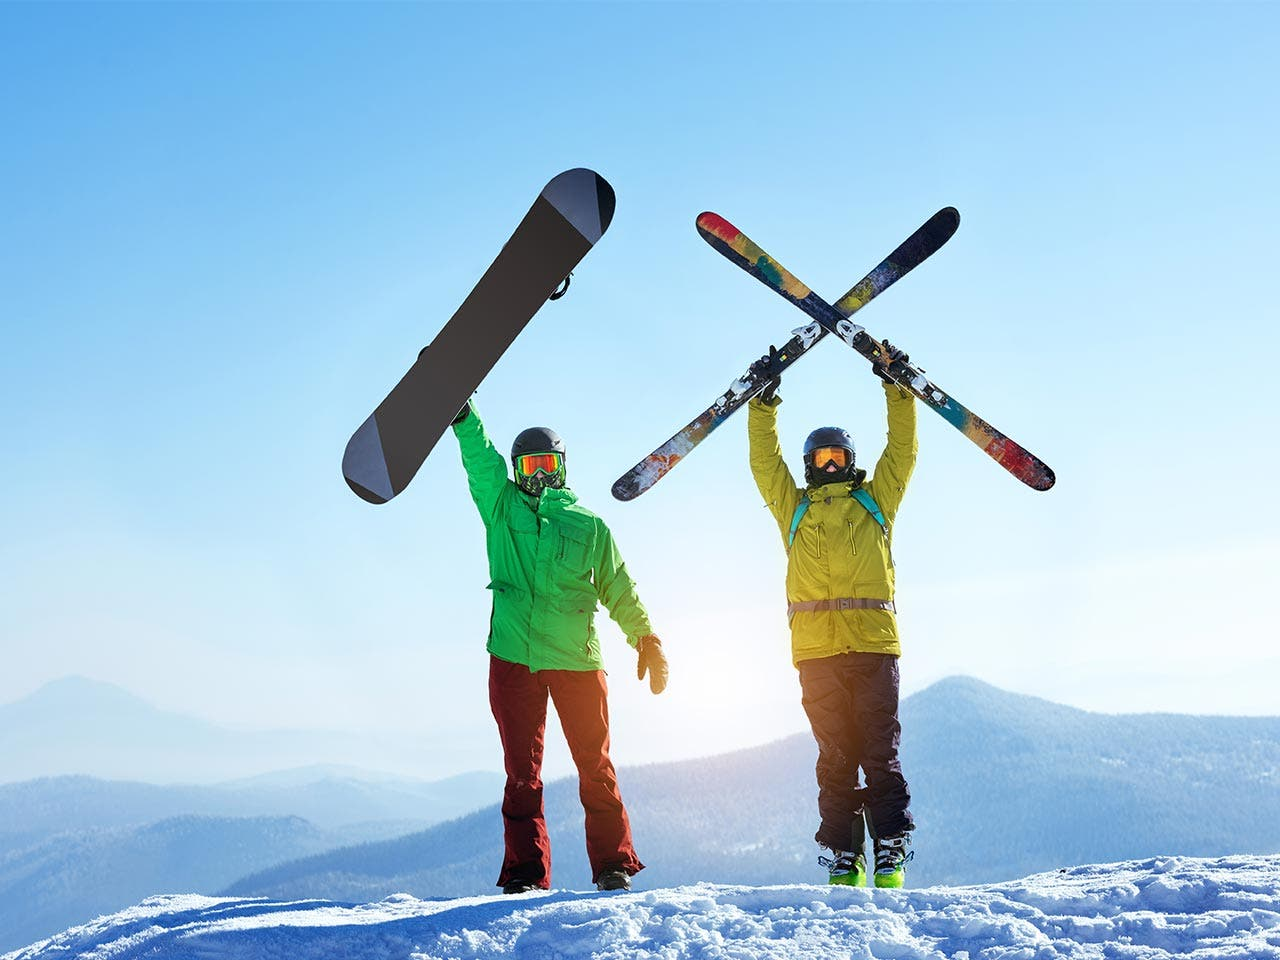 Winter sporting goods | Dmitry Molchanov/Shutterstock.com